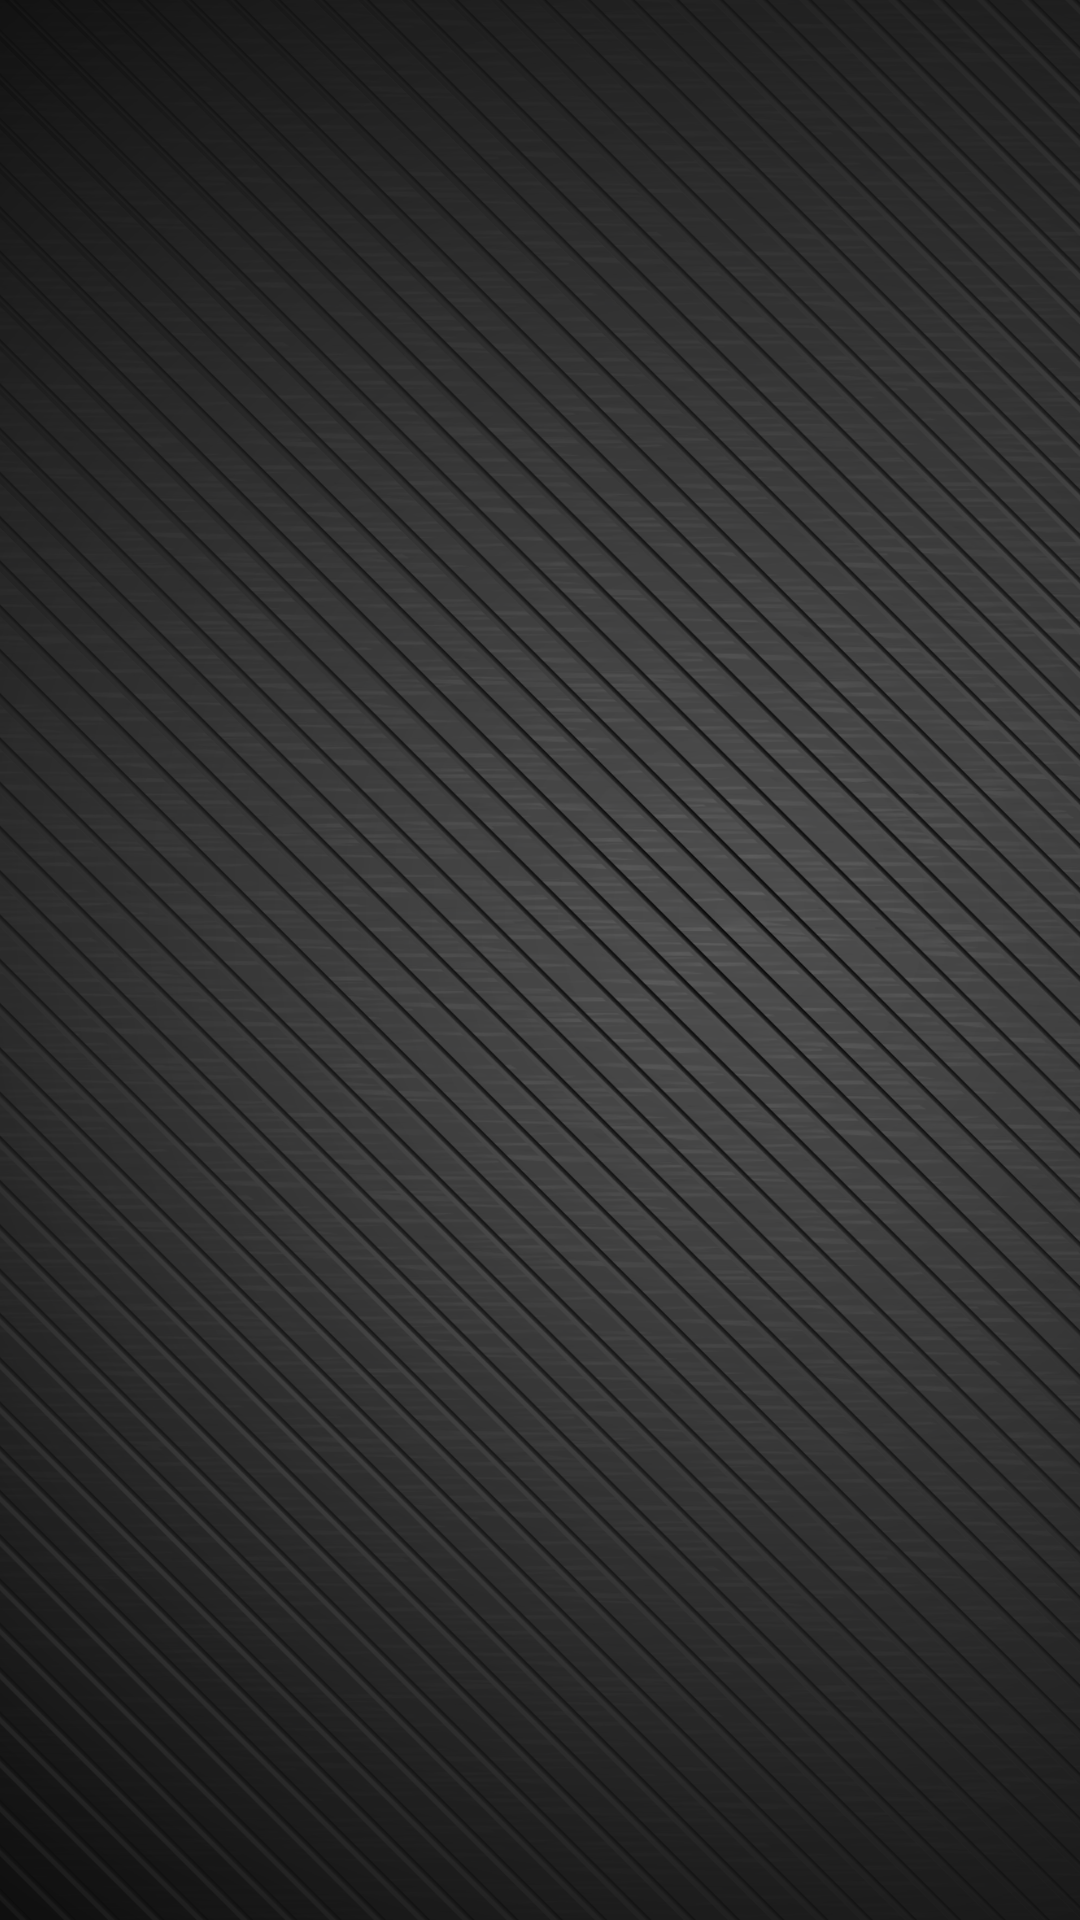 Ultra HD Striped Black Wallpaper For Your Mobile Phone ...0257